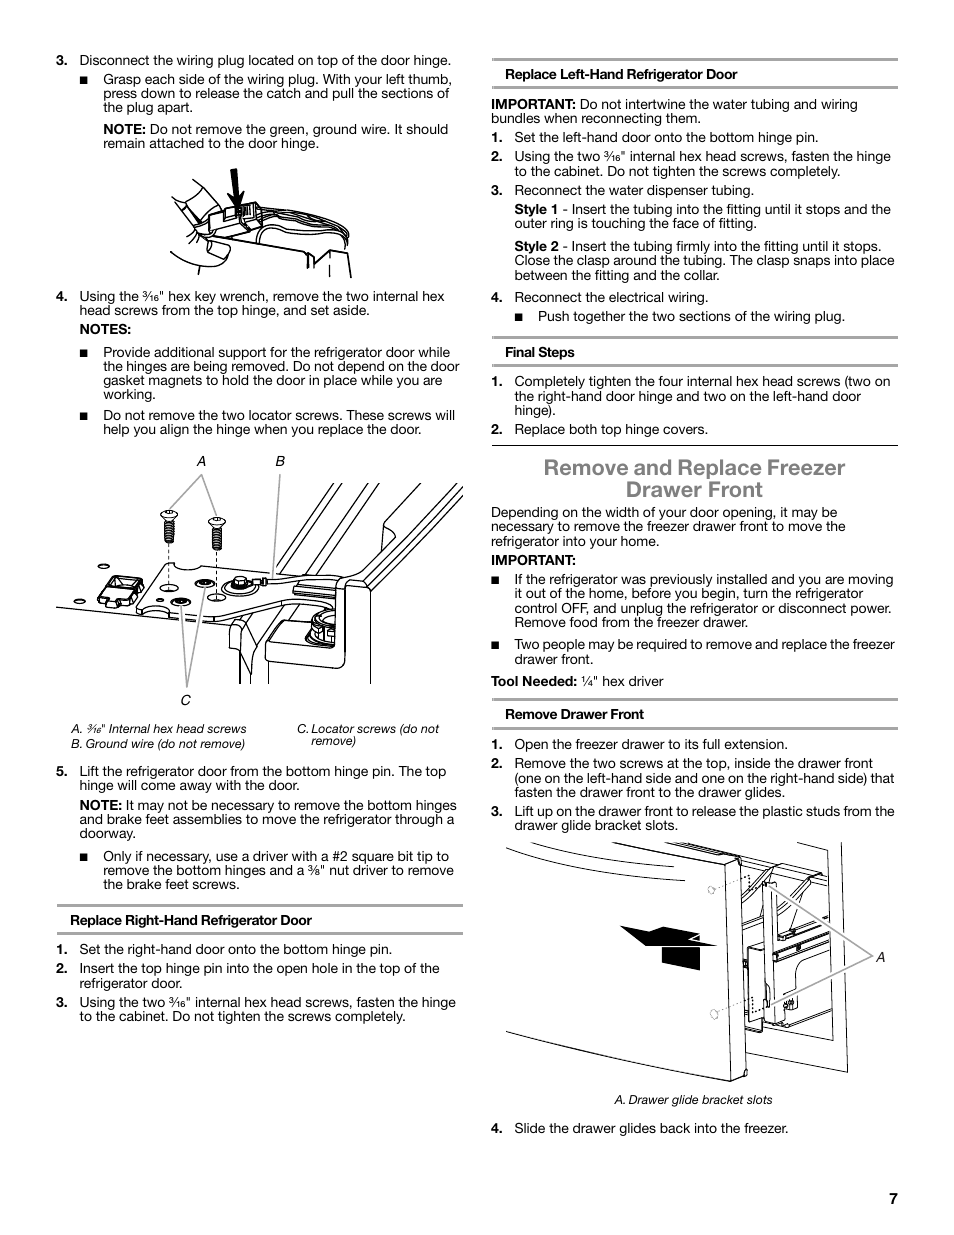 Remove And Replace Freezer Drawer Front Whirlpool Wrf991boom User Wiring A Plug Top Manual Page 7 108